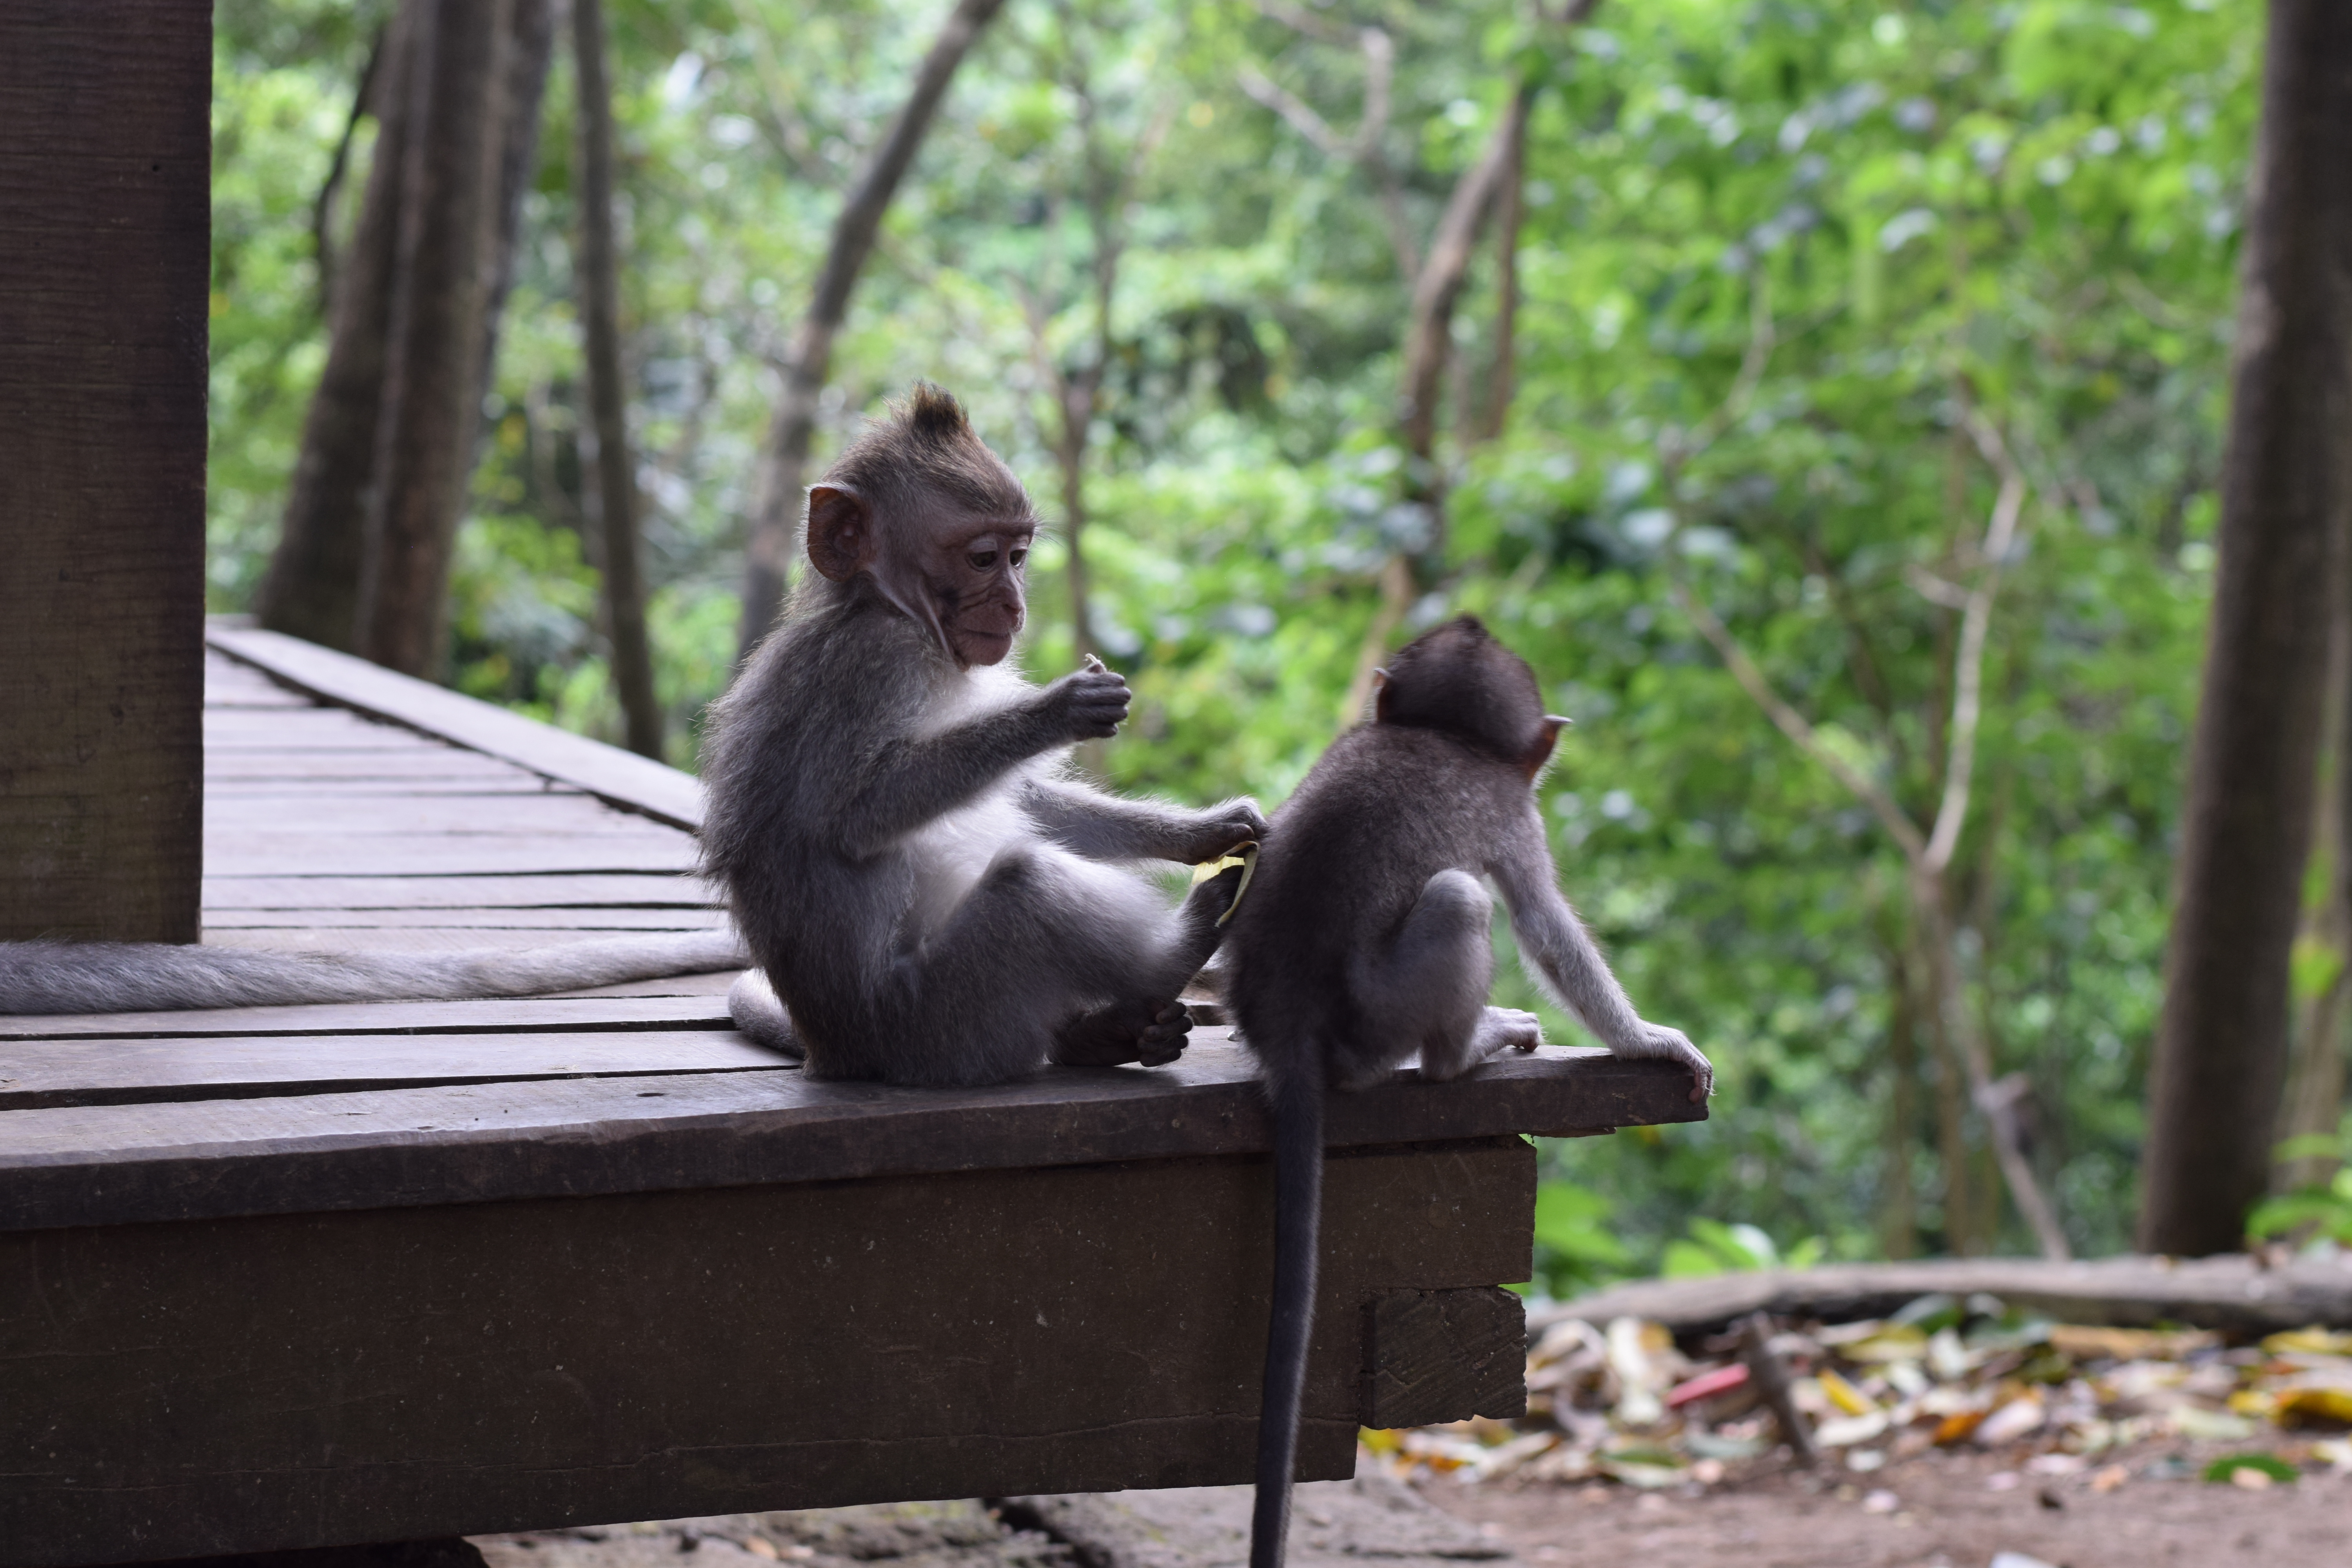 Monkey Sanctuary + Forest Ubud, Bali, Indonesia - Our Bali Trip - 12 Things You Can't Miss In Ubud Bali - Ubud Bali - Ubud Monkey Forest - Ubud Travel Blog - Ubud Bali Hotels - What To Do In Ubud - #ubud #bali #travelblog